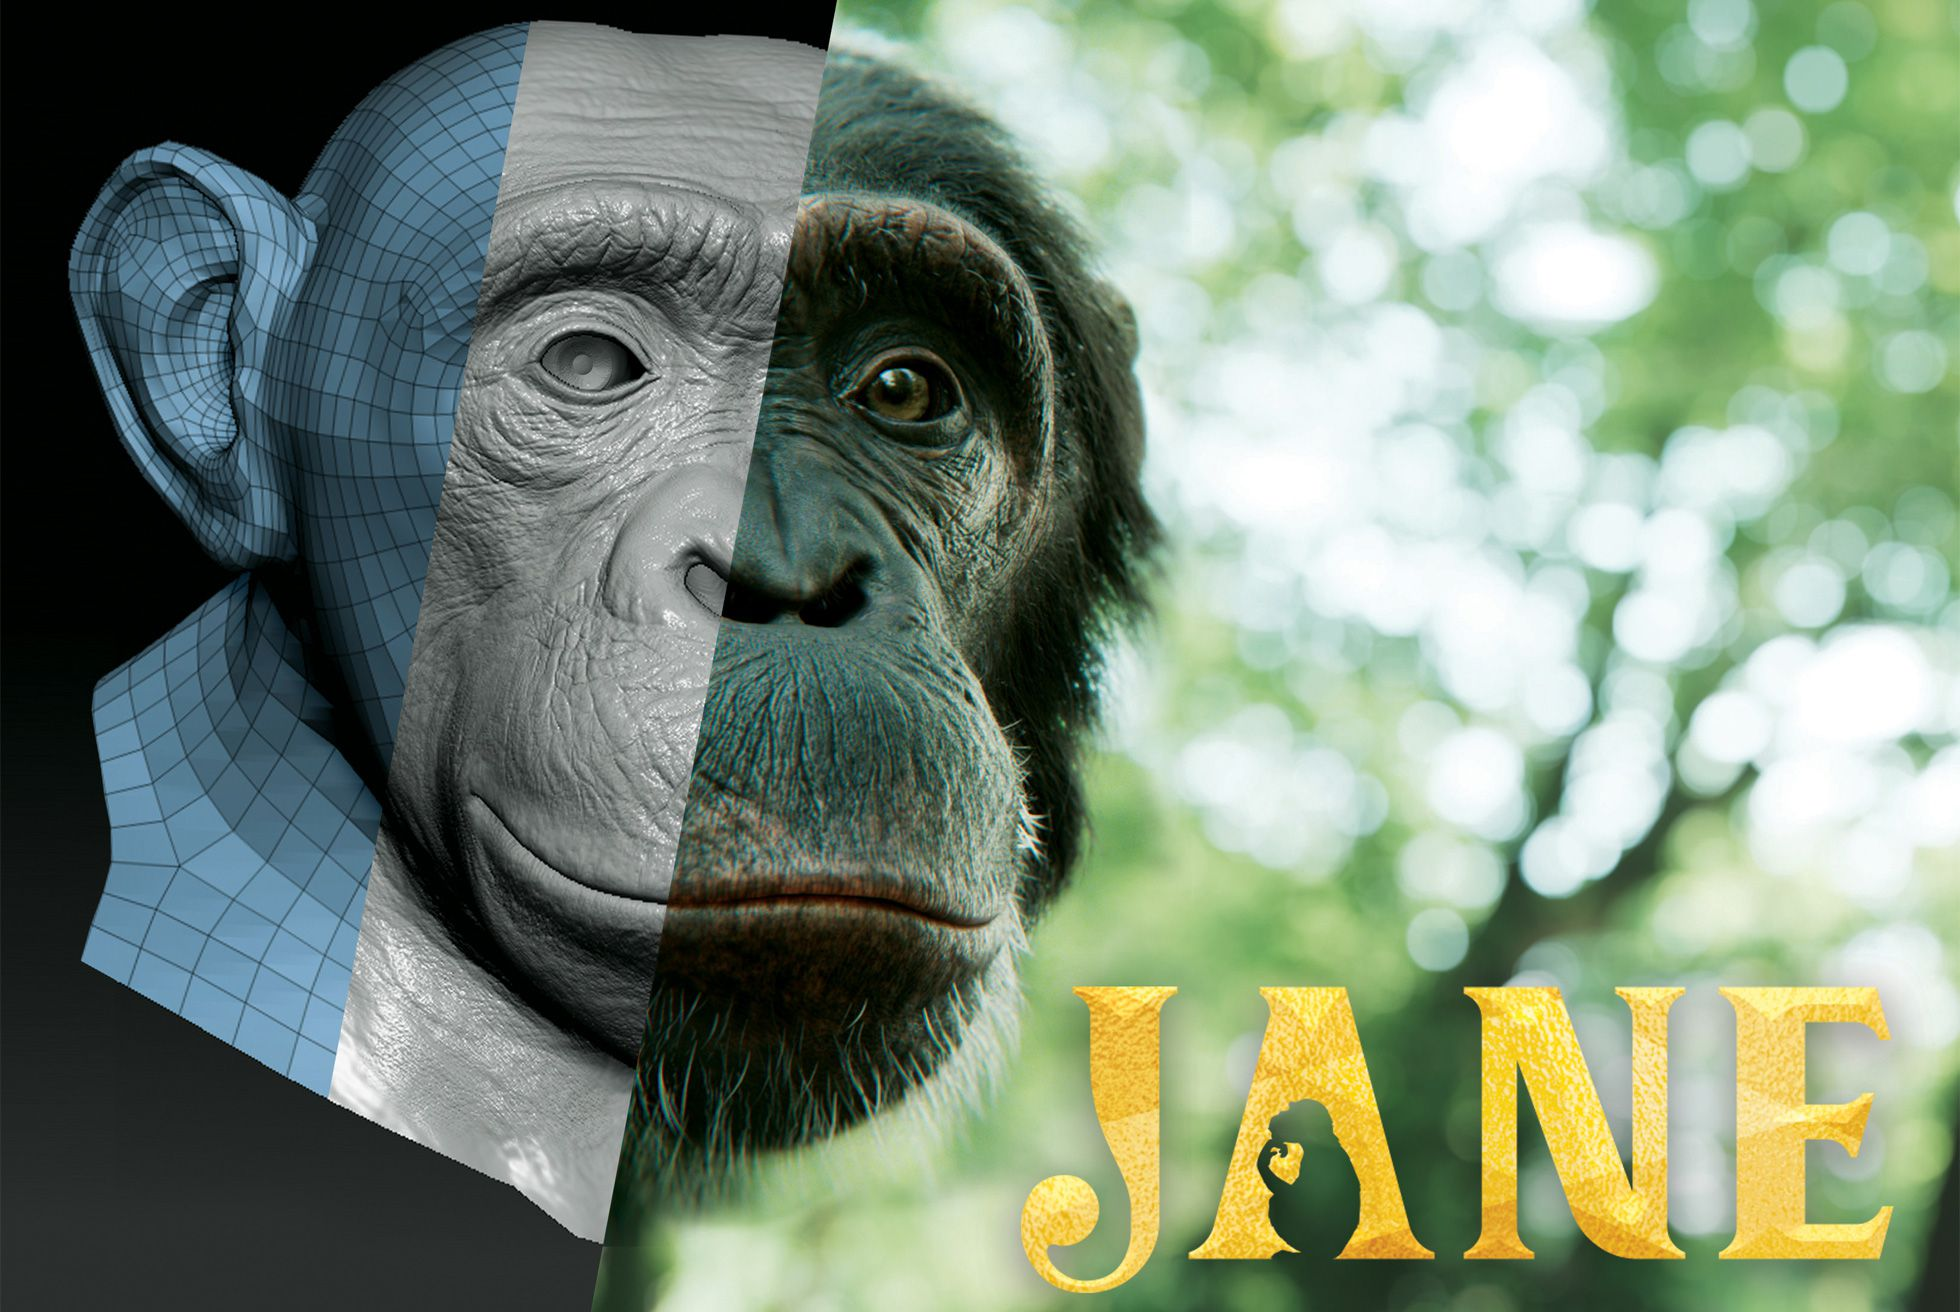 Apple TV+ Getting Family-Friendly Series Inspired by Dr. Jane Goodall